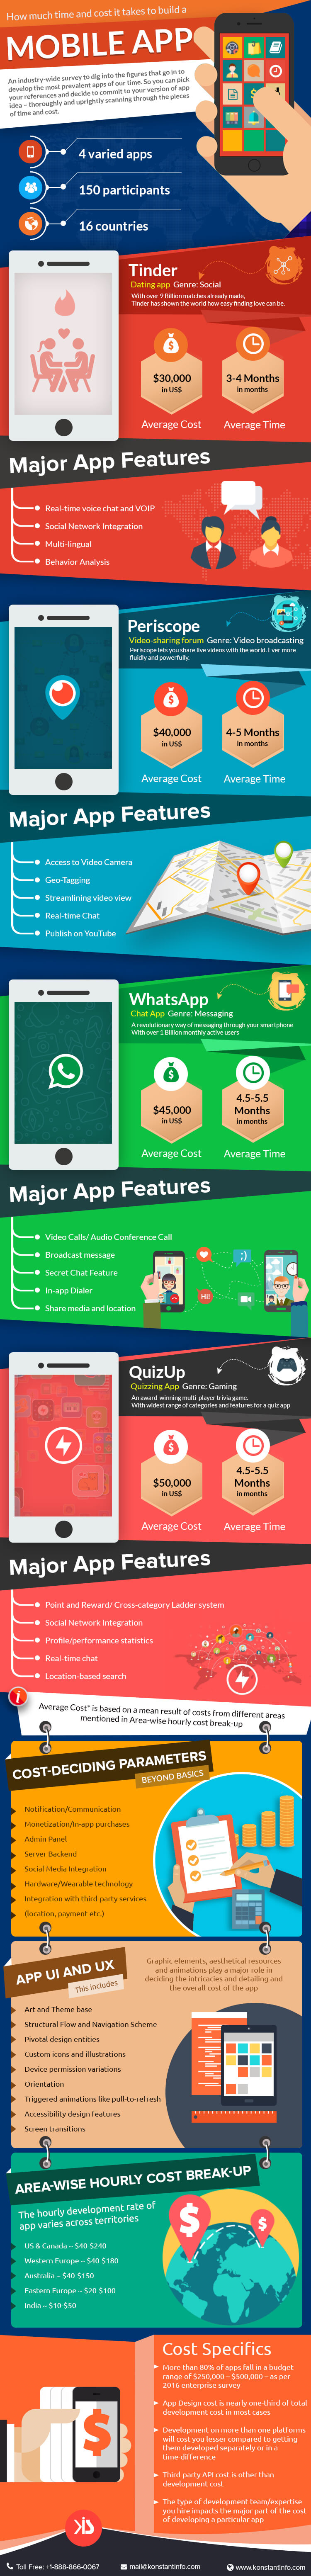 Infographic: How Much Time and Cost It Takes To Build a Mobile App